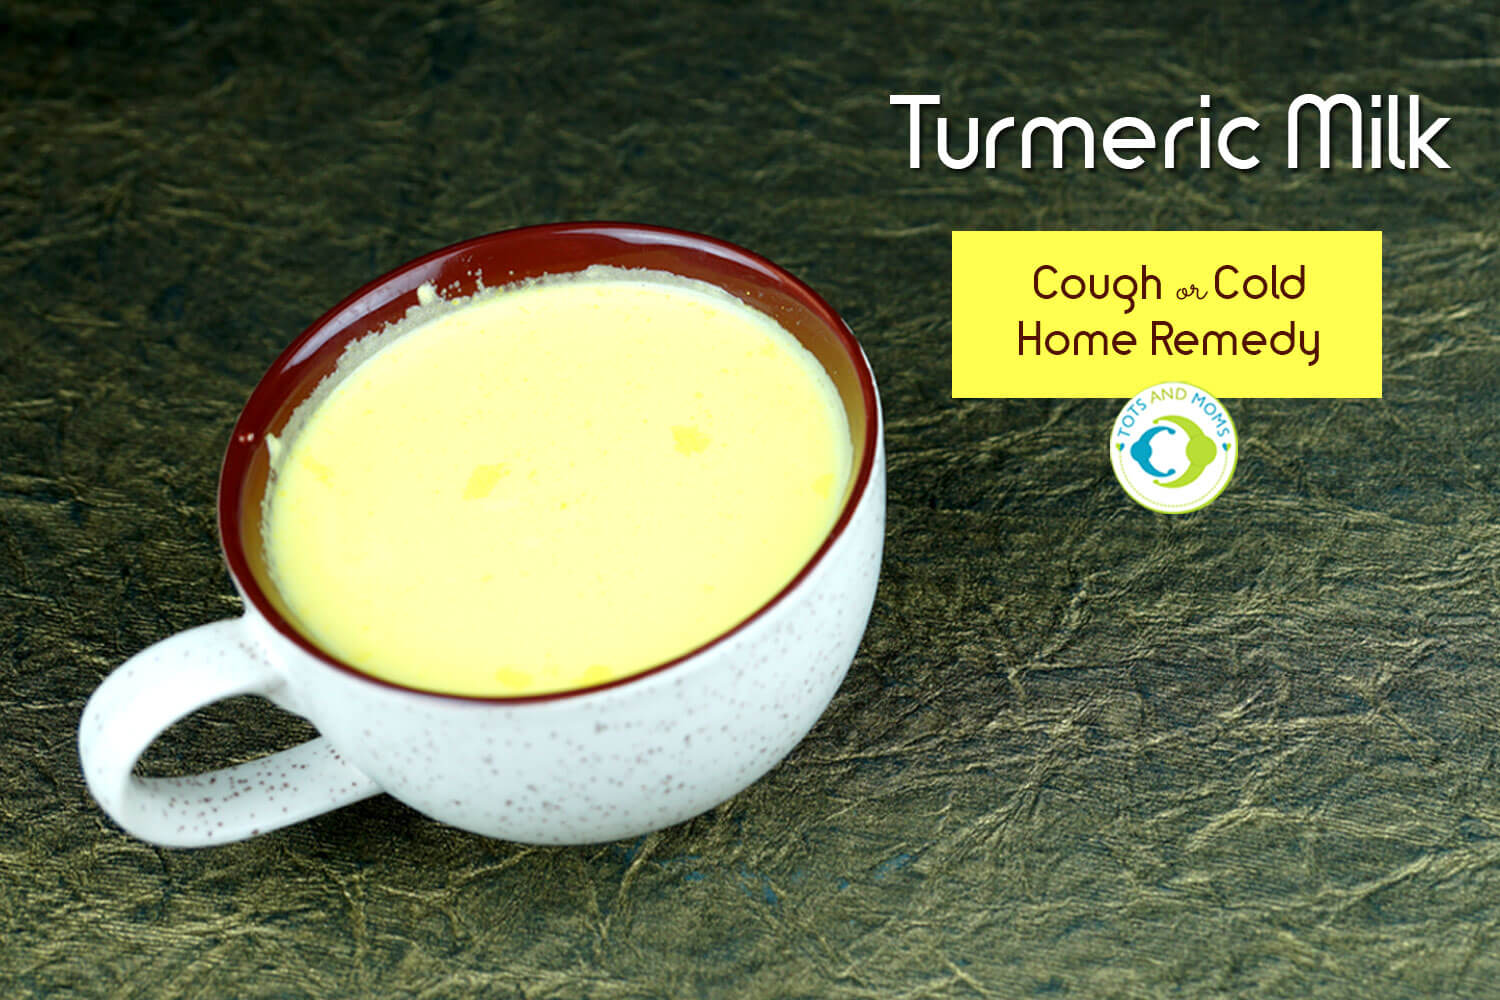 TURMERIC MILK - COUGH & COLD HOME REMEDY for Toddlers, Kids & Family home made healthy energy drink